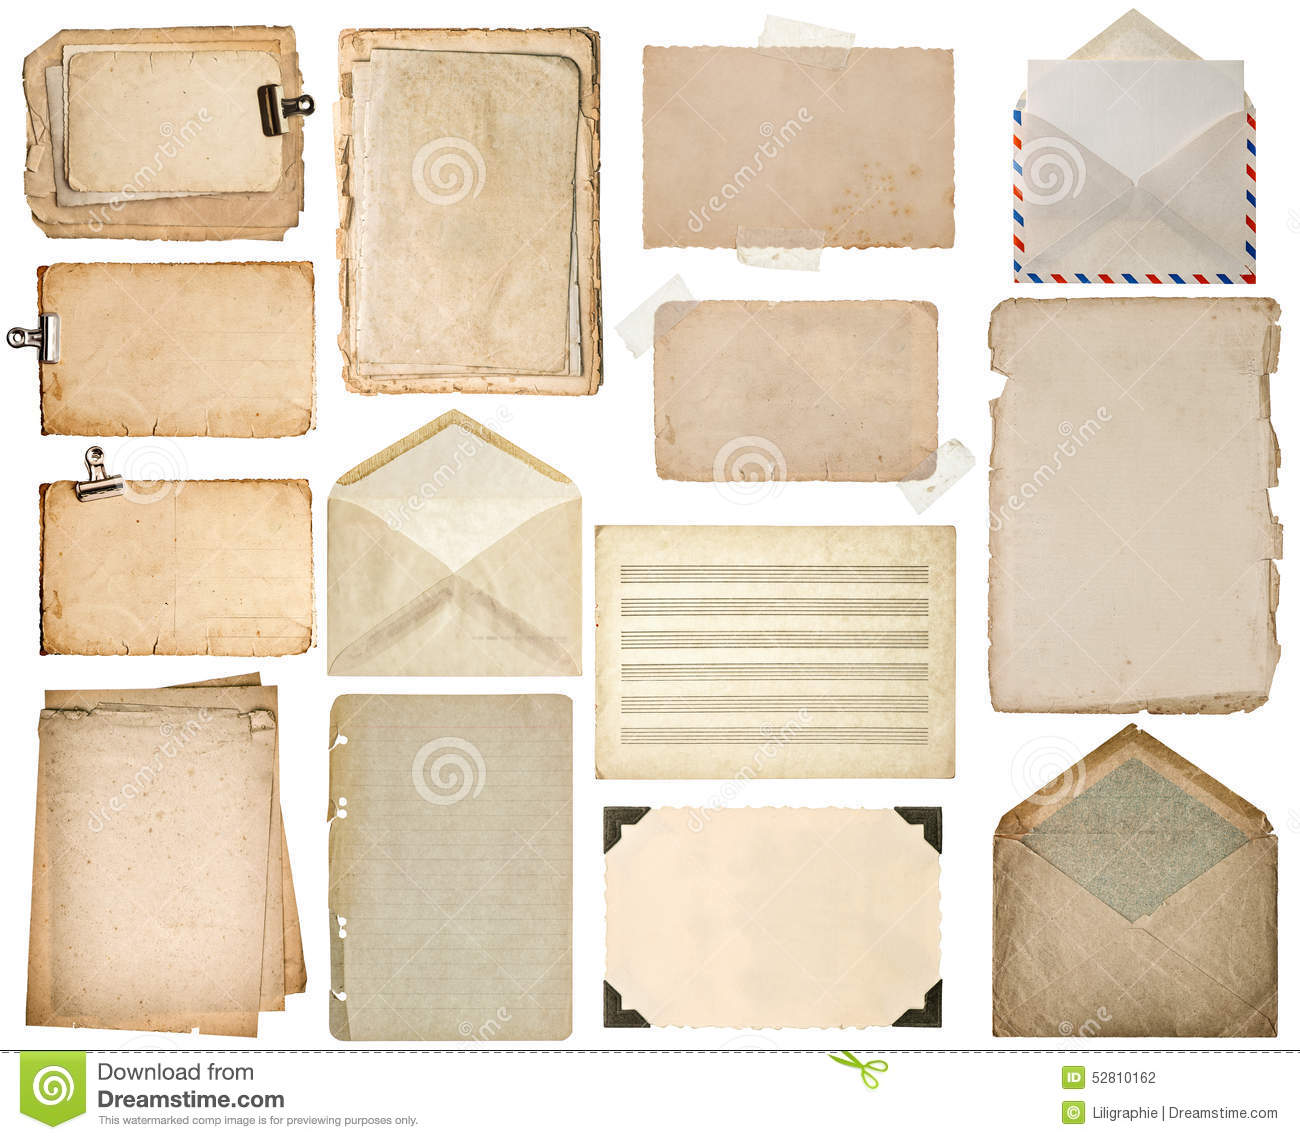 Used paper sheets old book pages cardboards music notes for Vintage book paper